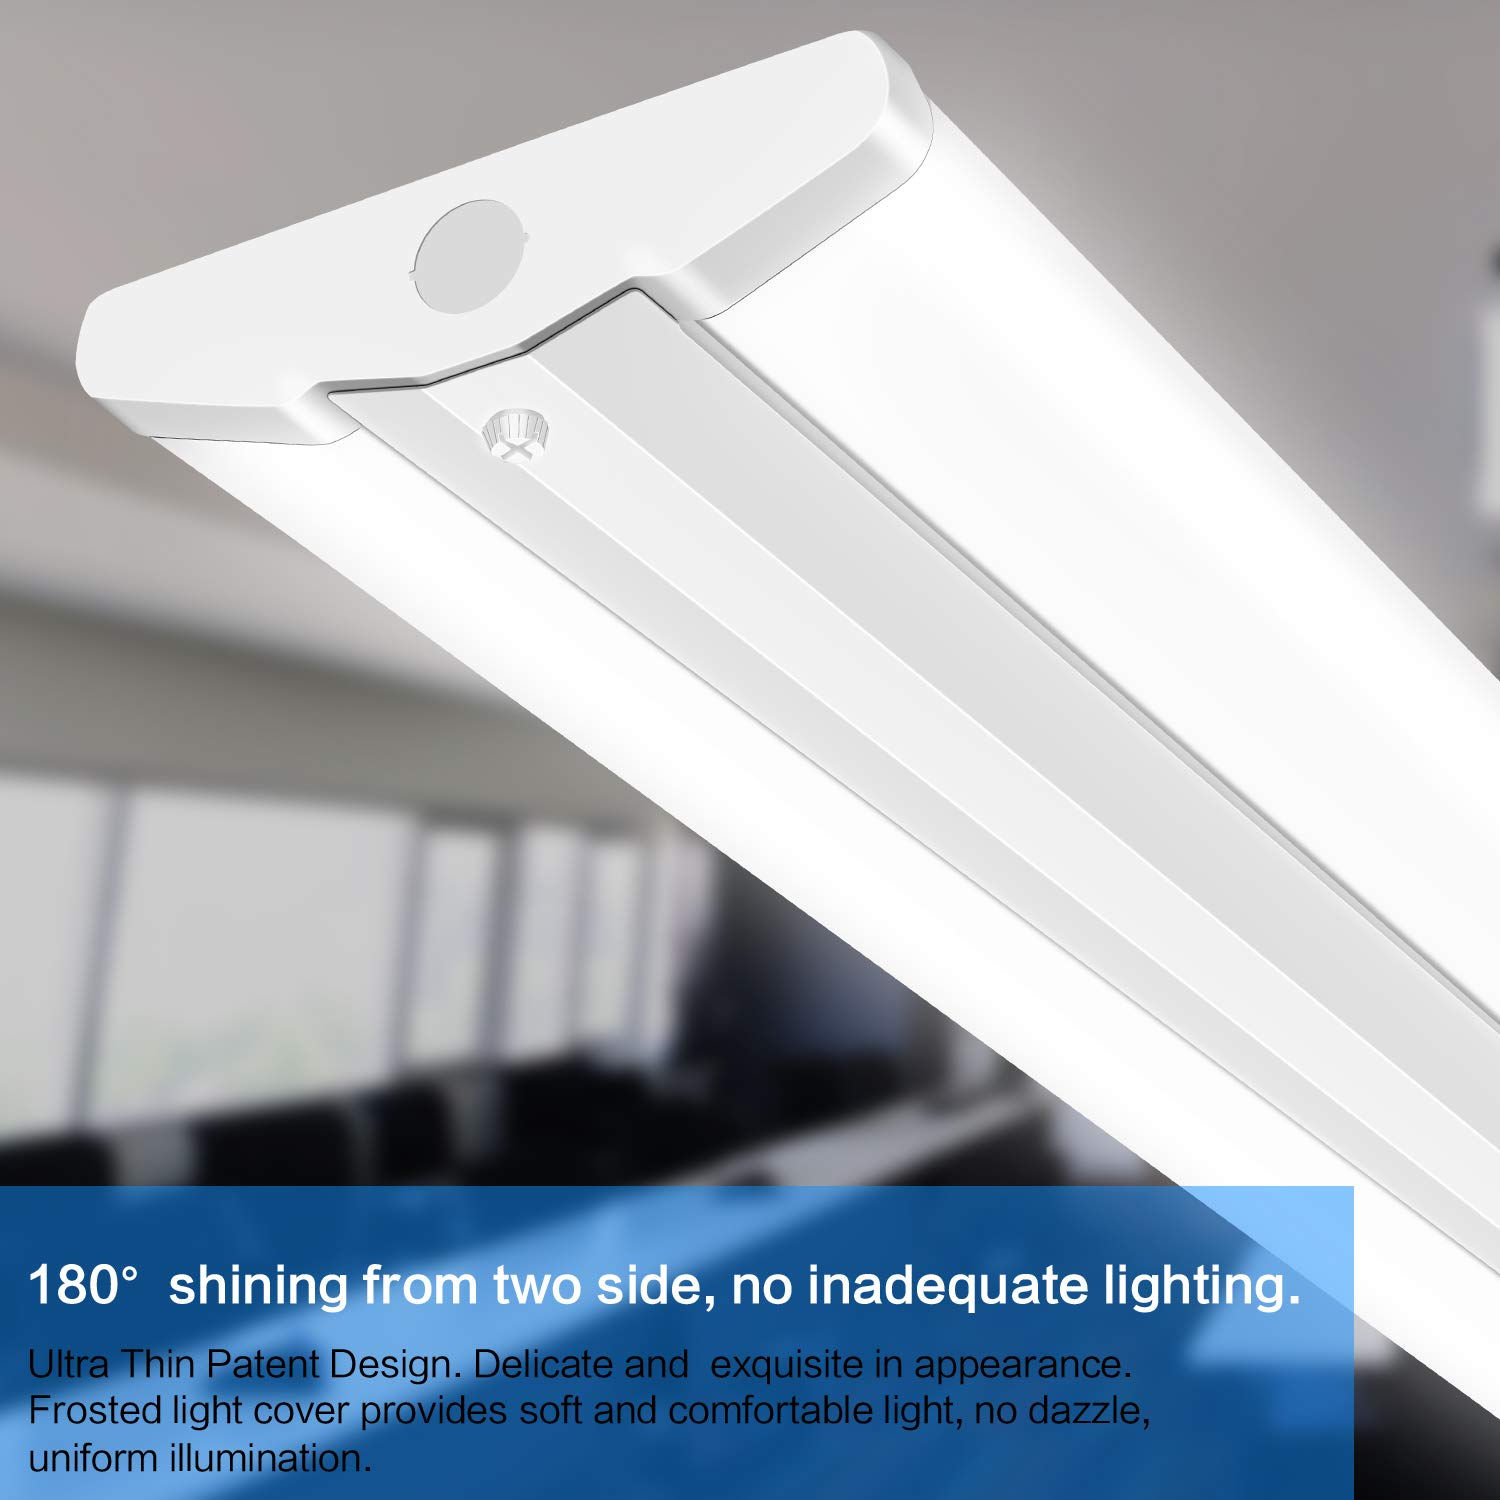 8 Ft 2 Lamp Fluorescent Strip Light White No Ssf2964wp 8ft: 8FT LED Wraparound Ultra Slim Strip Light 110W LED Garage